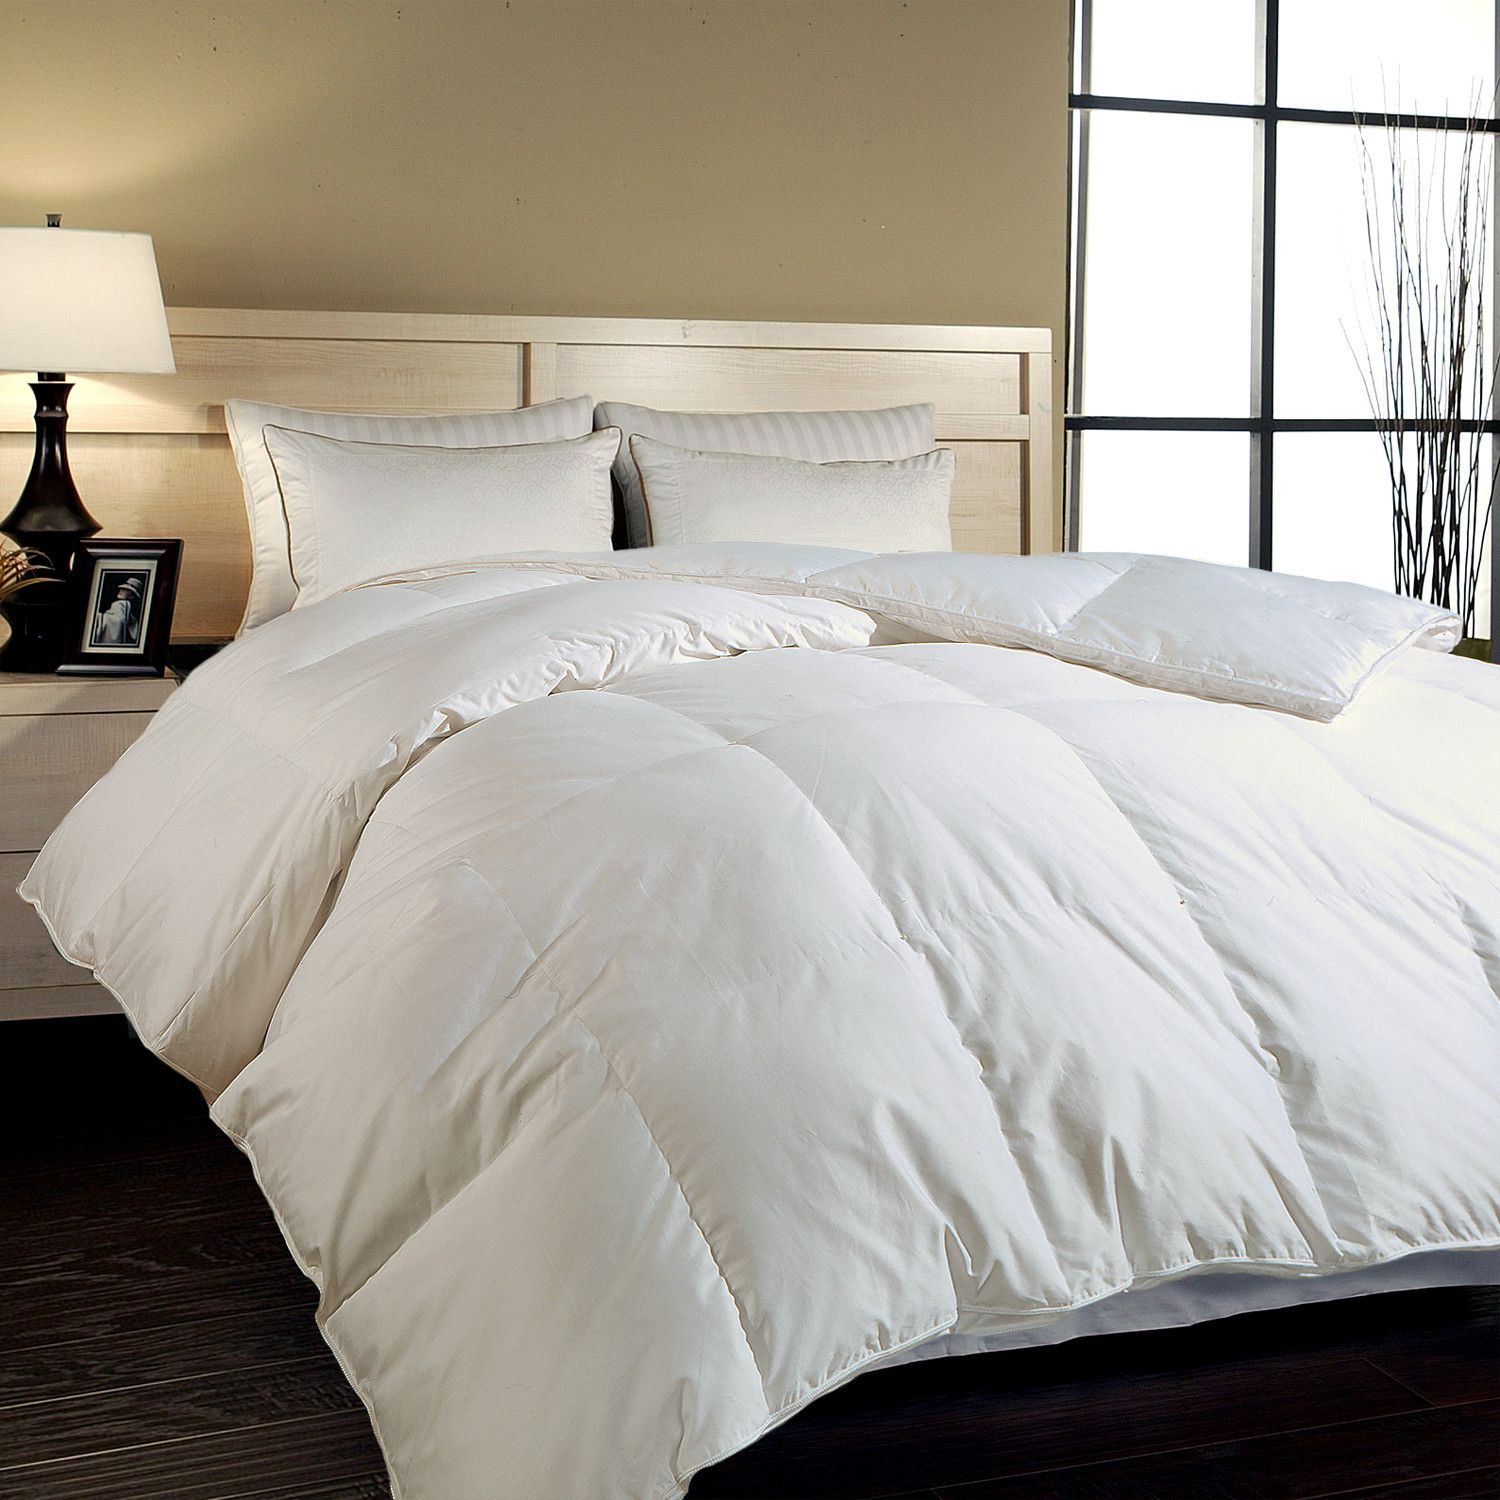 Mural of Cal King Down Comforter Product Selections | Bedroom Design ...